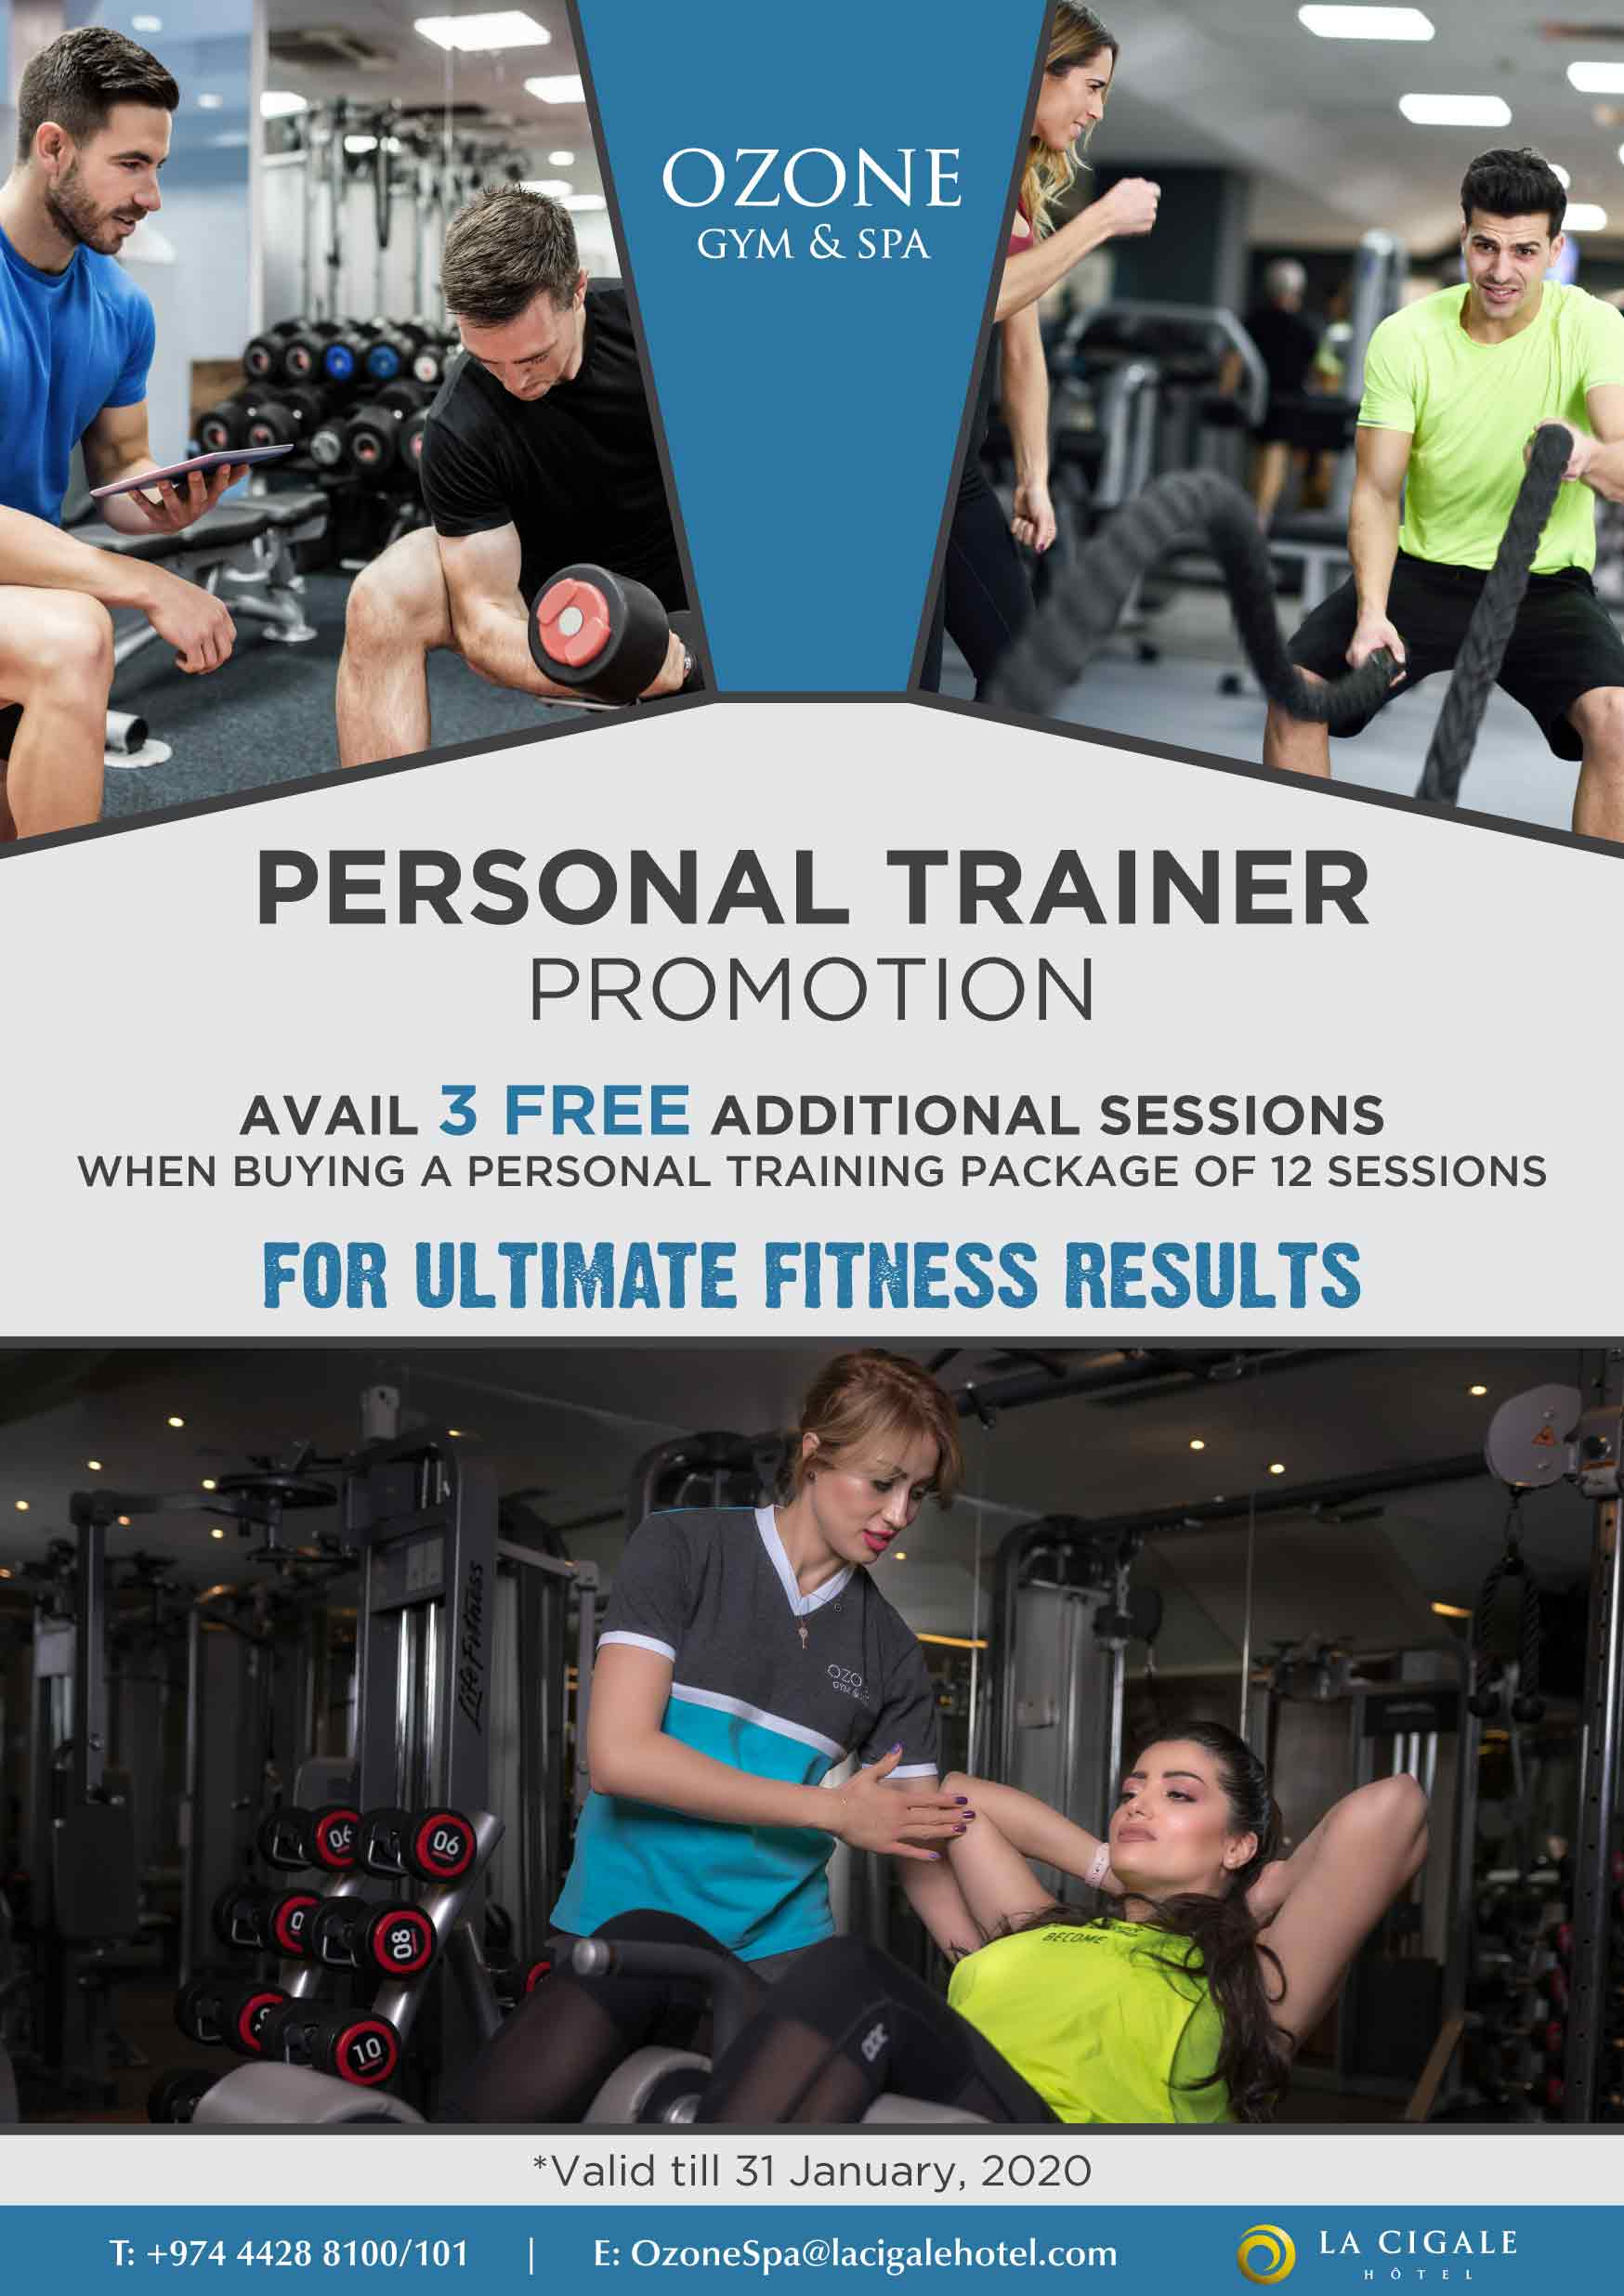 La Cigale Hotel - Personal Training Offer - 3 FREE Accesses